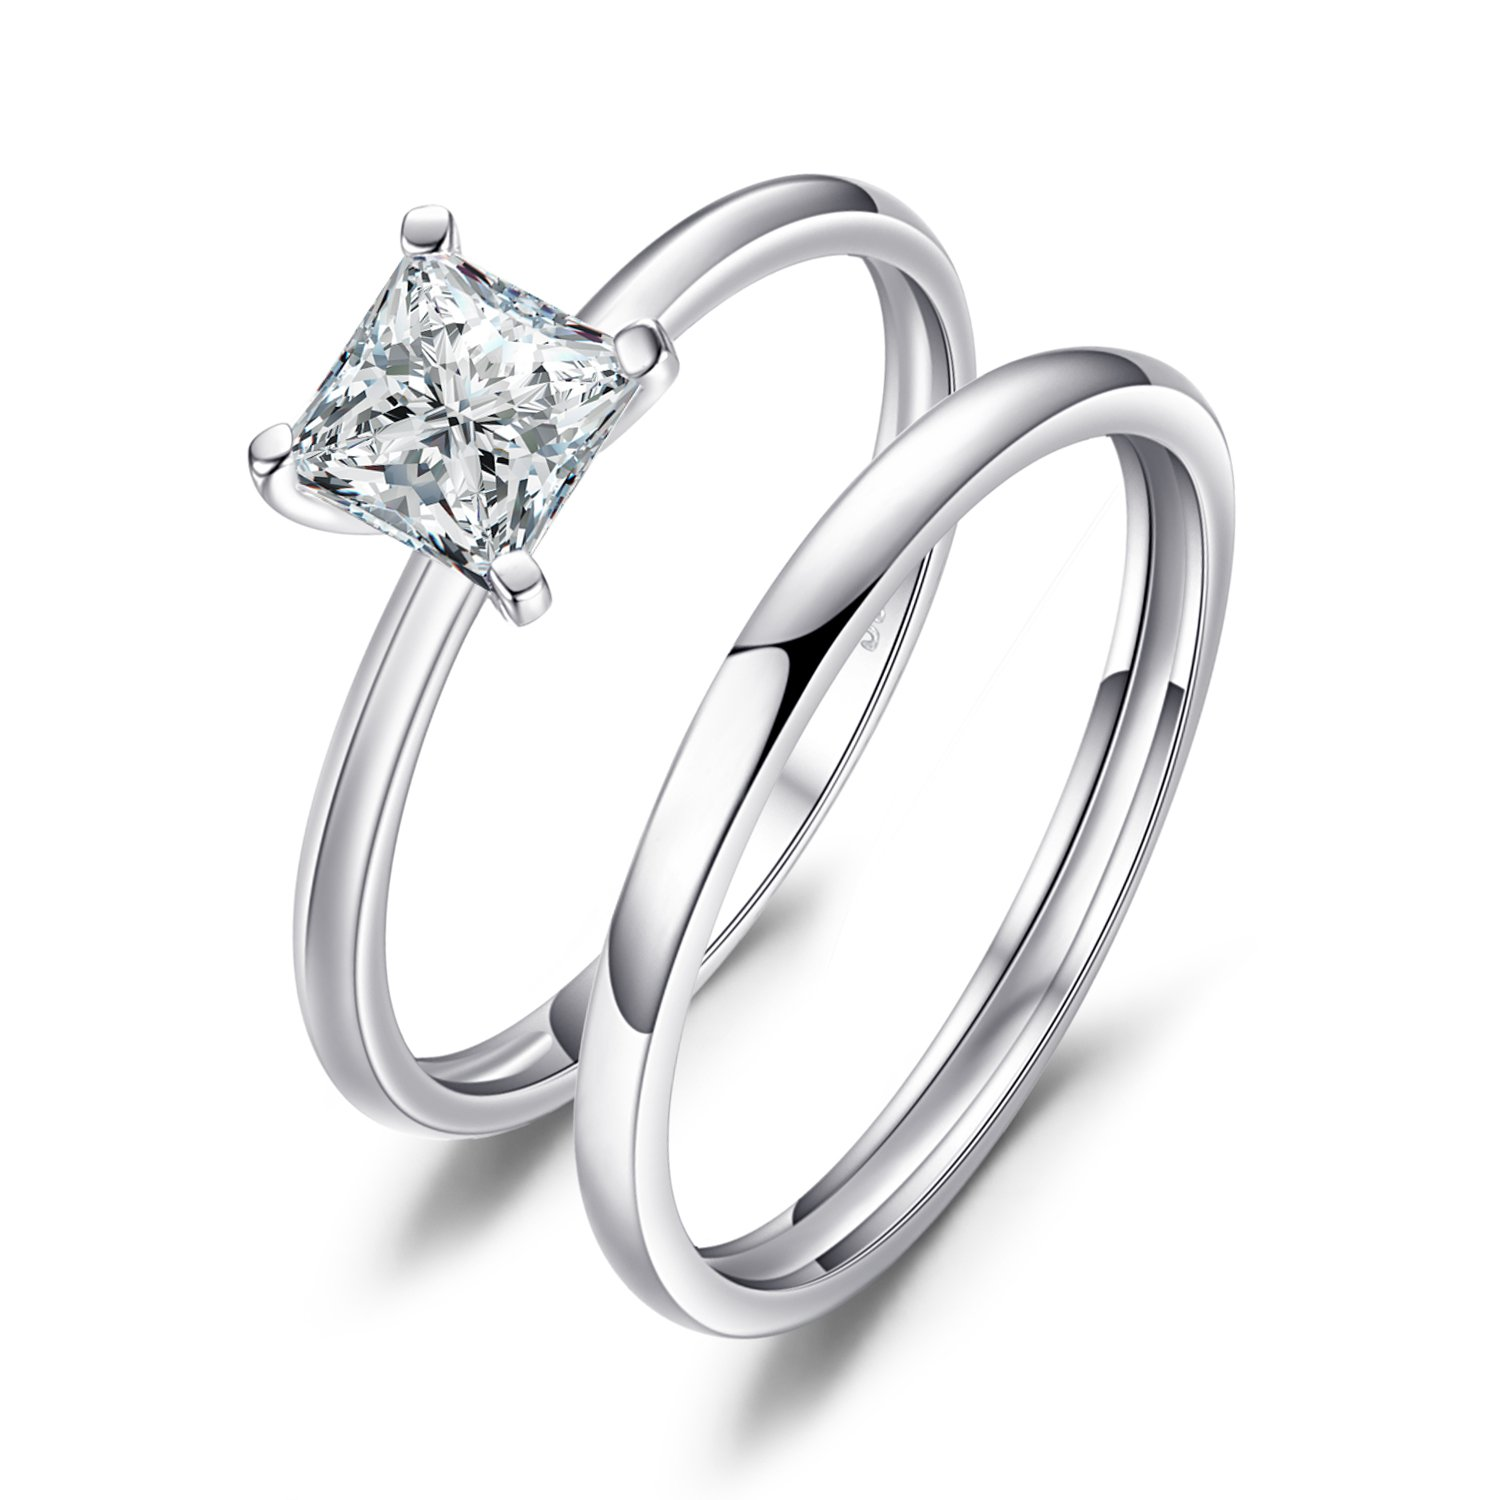 JewelryPalace Wedding Rings Wedding Bands Solitaire Engagement Rings For Women Anniversary Promise Ring Bridal Sets Princess Cubic Zirconia 925 Sterling Silver Ring Sets 61nt7khUU8L